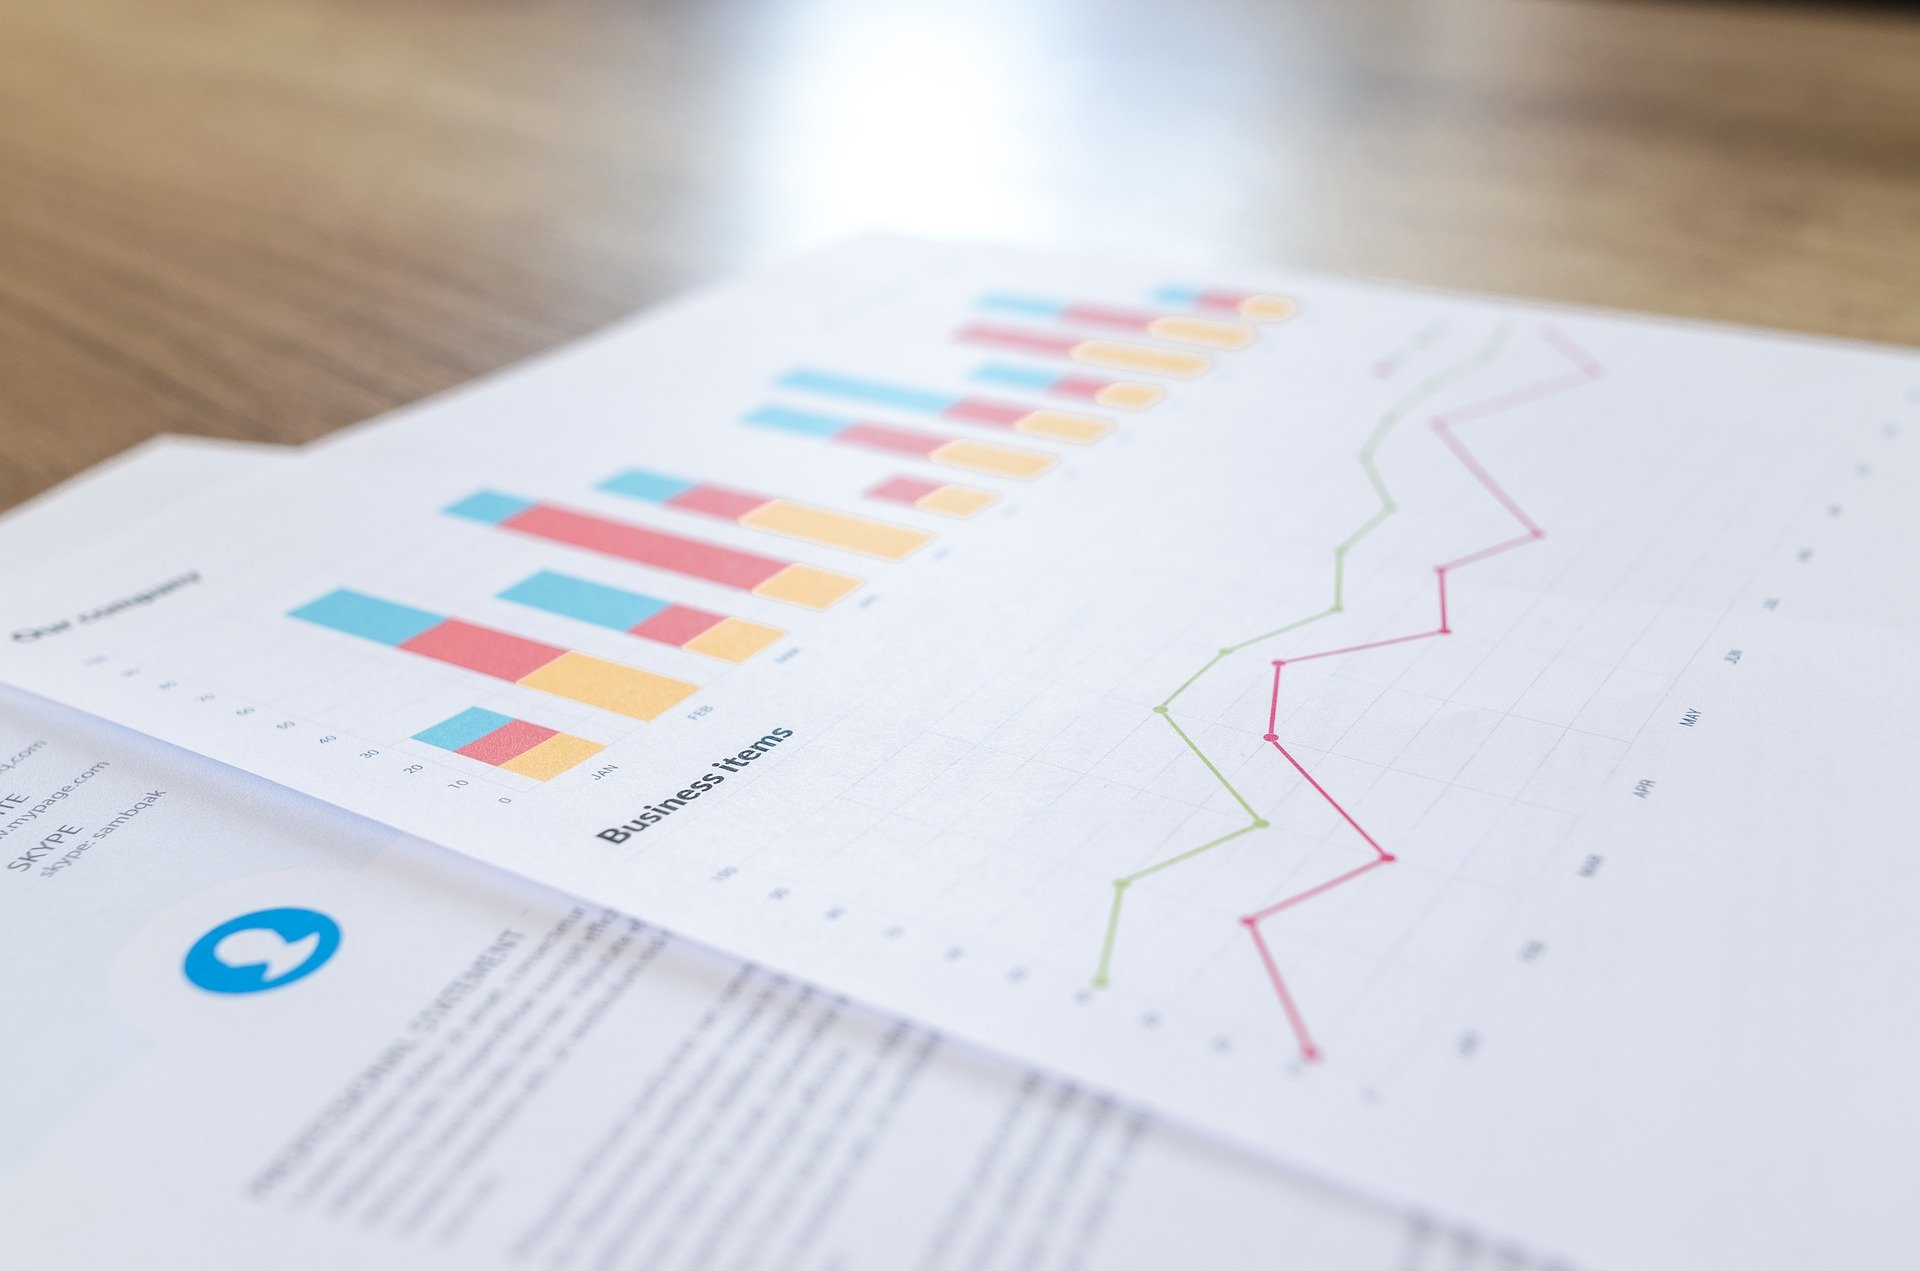 10 Content Marketing Strategies to Uplift Small Business